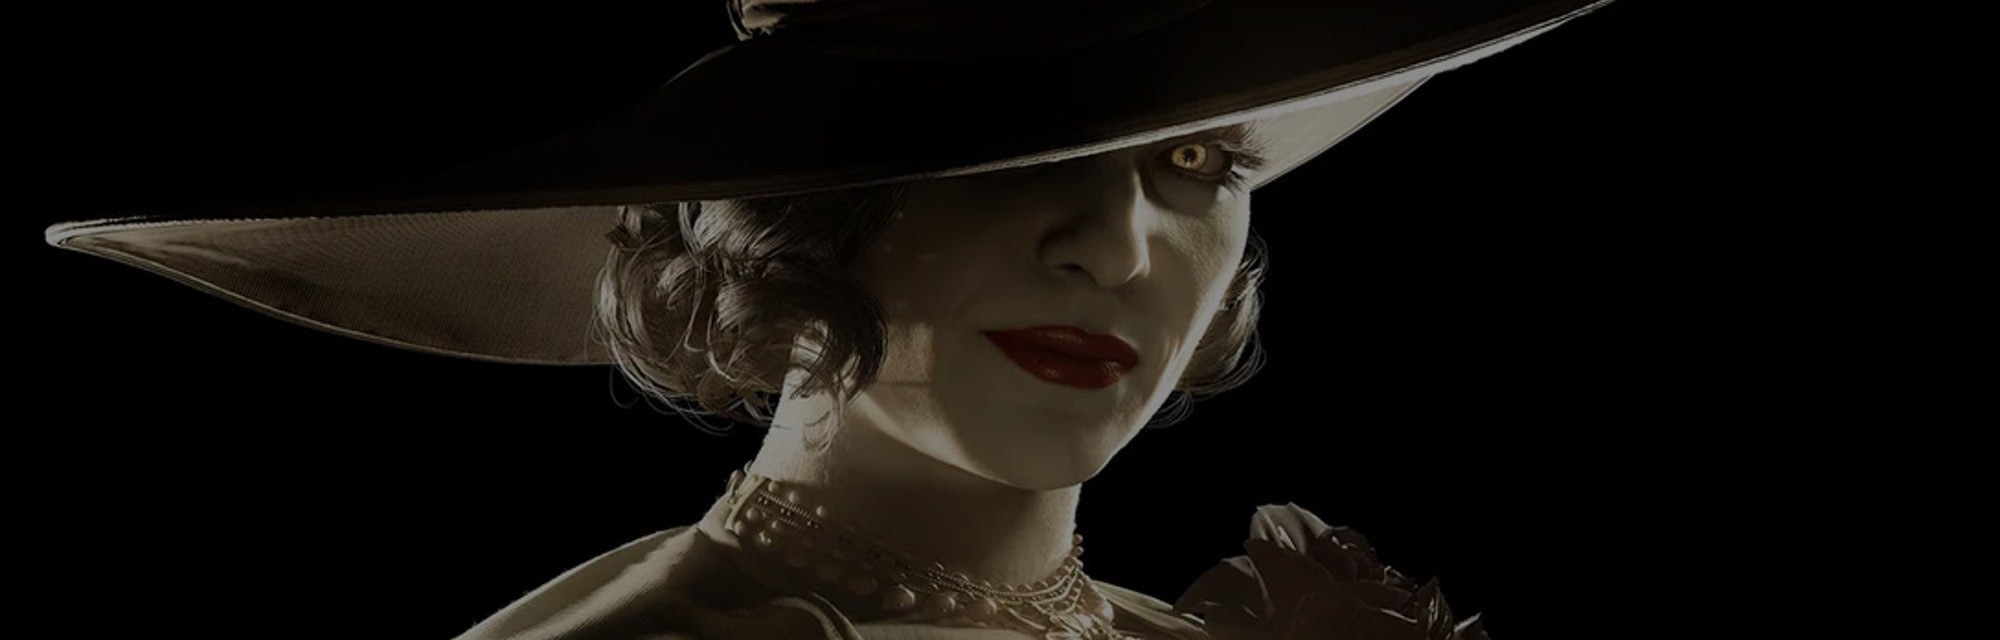 A tile layout of Resident Evil Village's Lady Dimitrescu, who is a female vampire in 1920s attire.